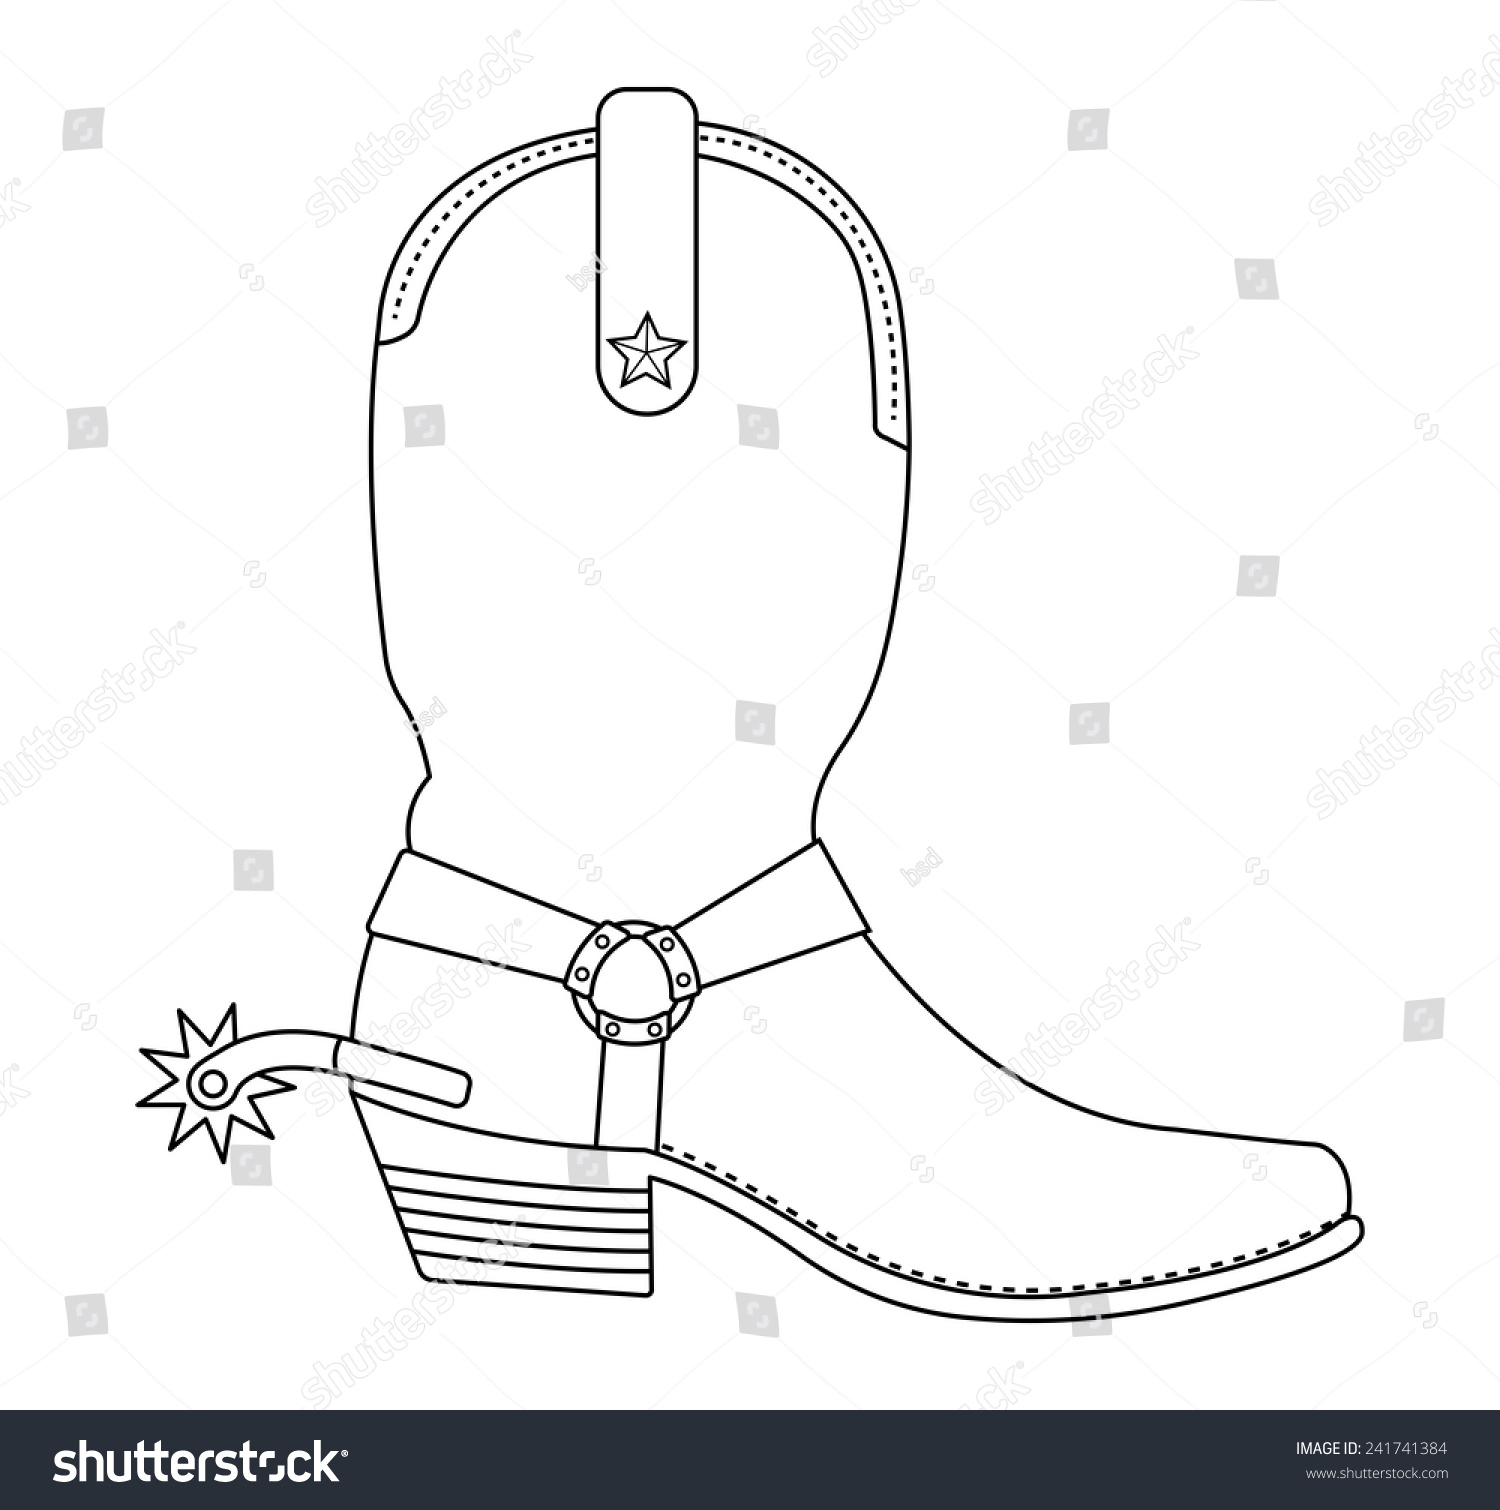 Coloring pictures of cowboy boots - Wild West Cowboy Boot With Spur And Star Contour Lines Vector Clip Art Illustration Isolated